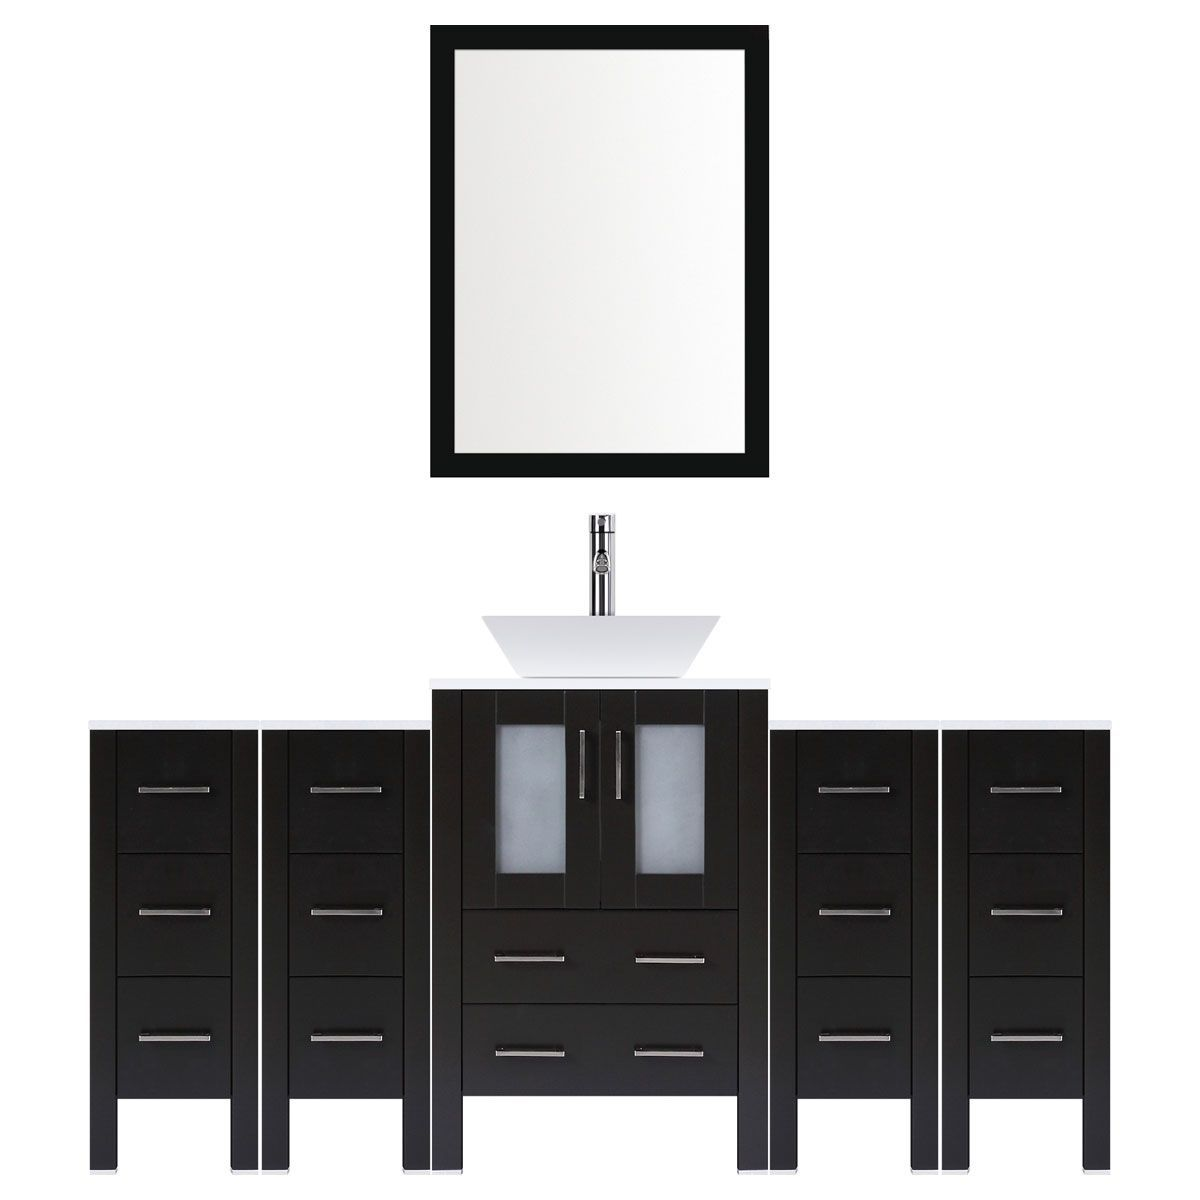 Lesscare Espresso 84w Single Vessel Sink Vanity Set With Four Drawer Bases And One Mirror